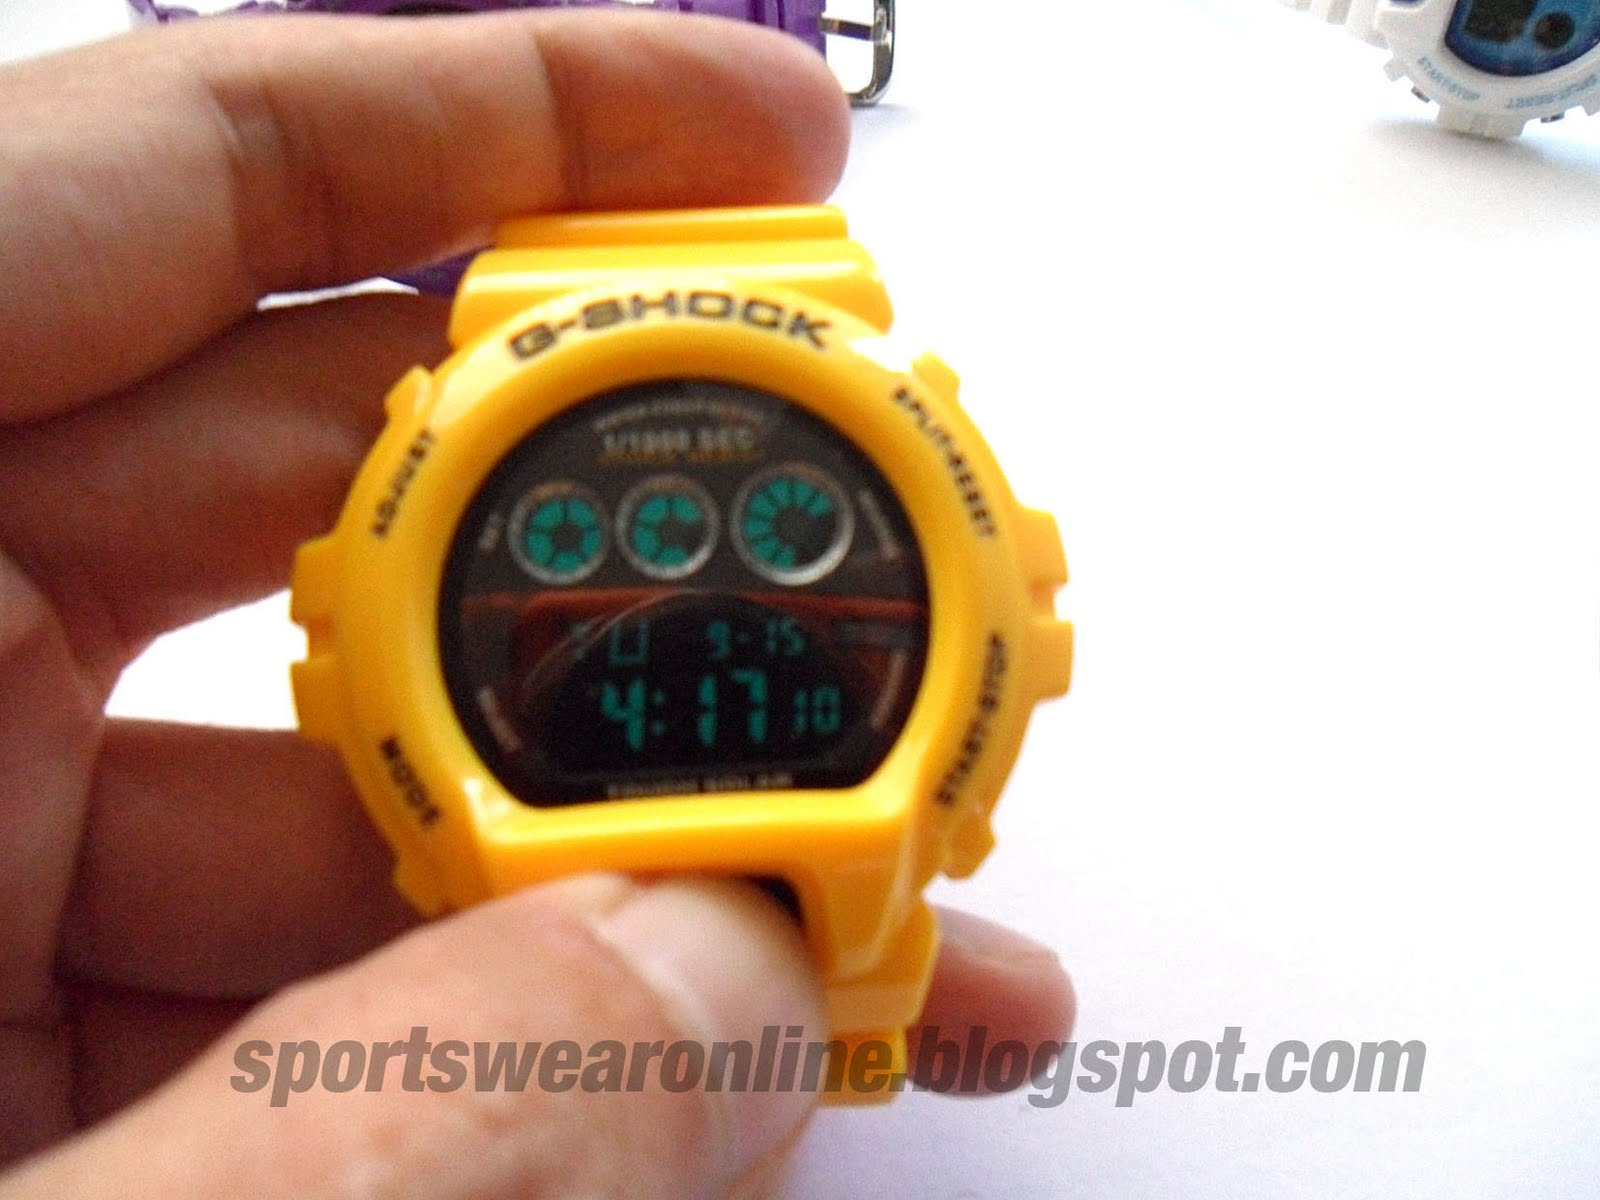 Cheap G-shock Watches For Sale